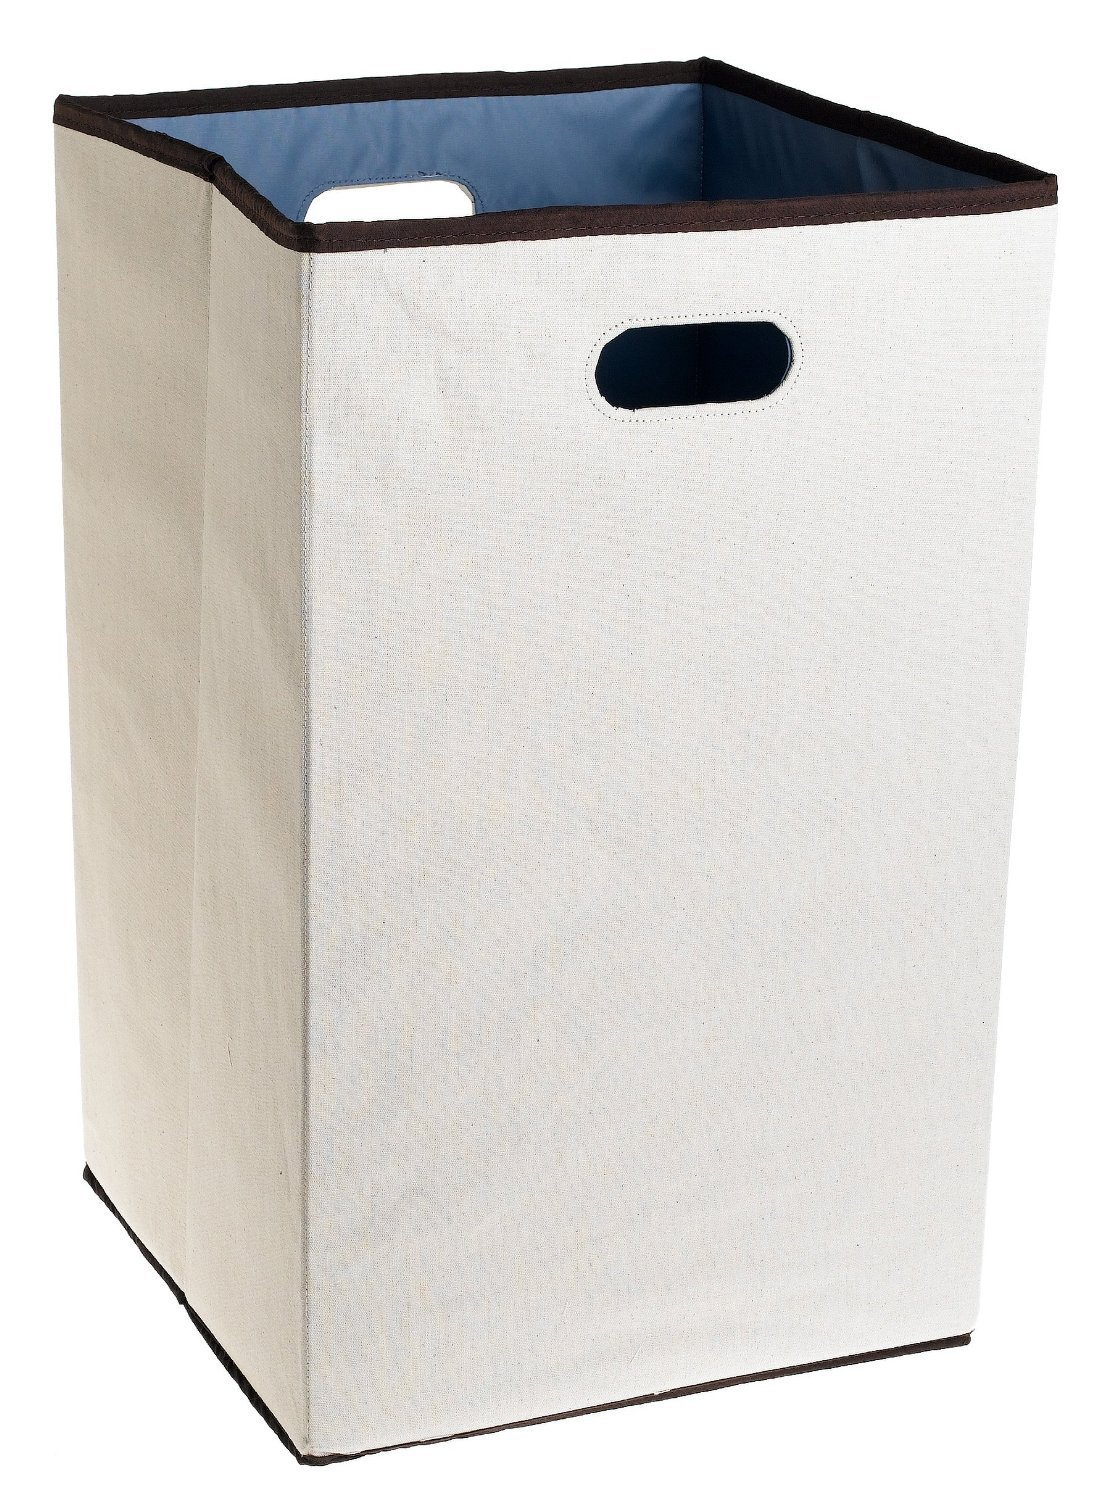 9 Best Laundry Baskets In 2017 Laundry Basket Reviews